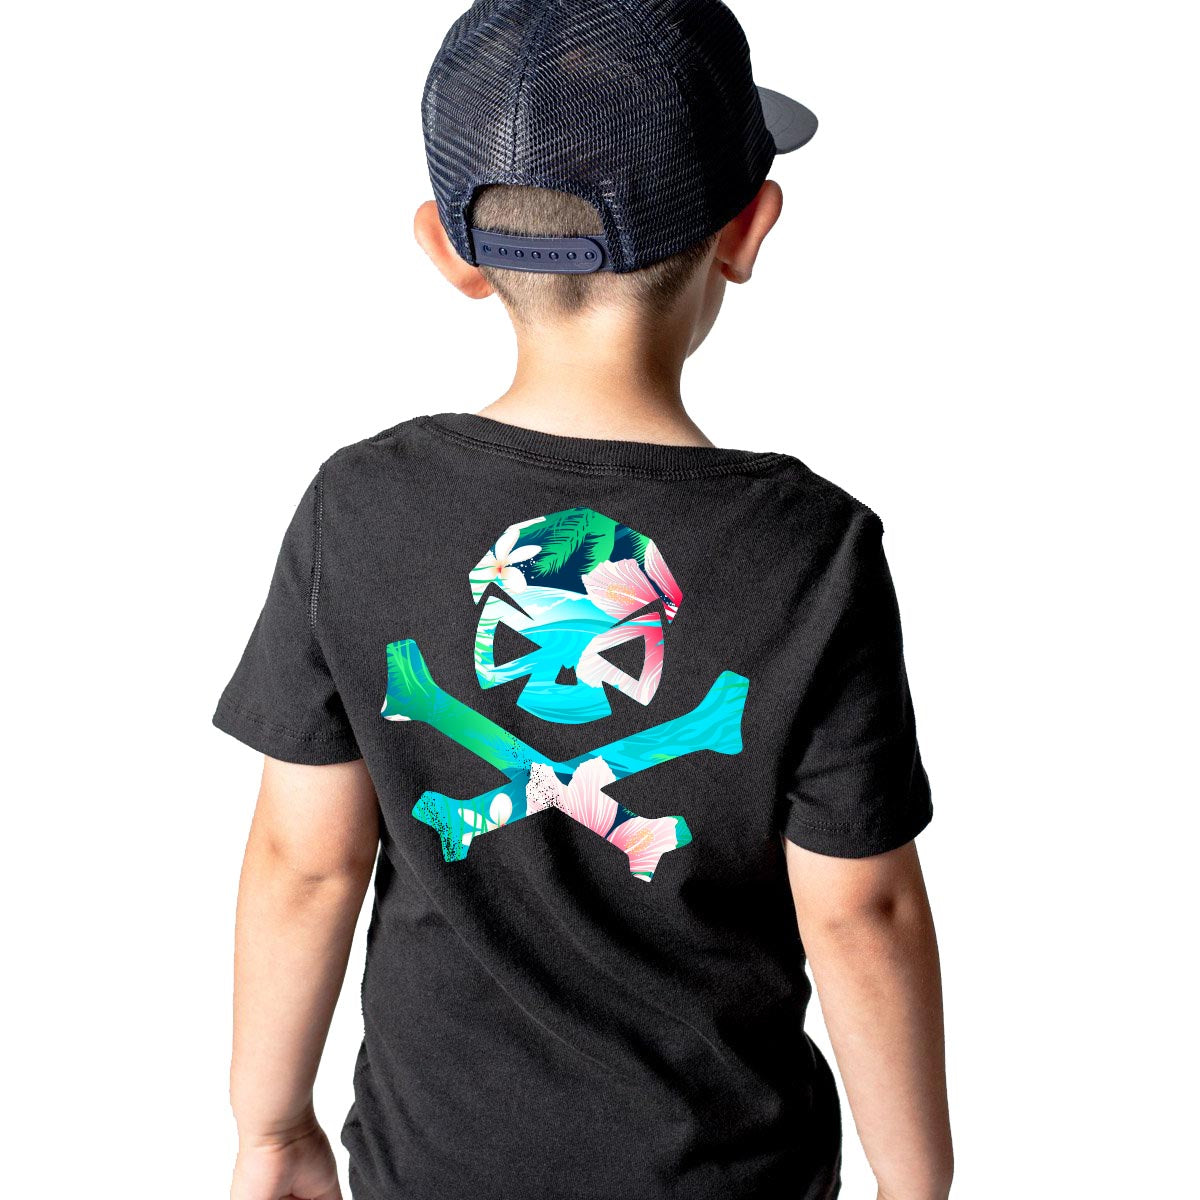 Hitter Five-0 - Youth - Black/Aqua - T-Shirts - Pipe Hitters Union